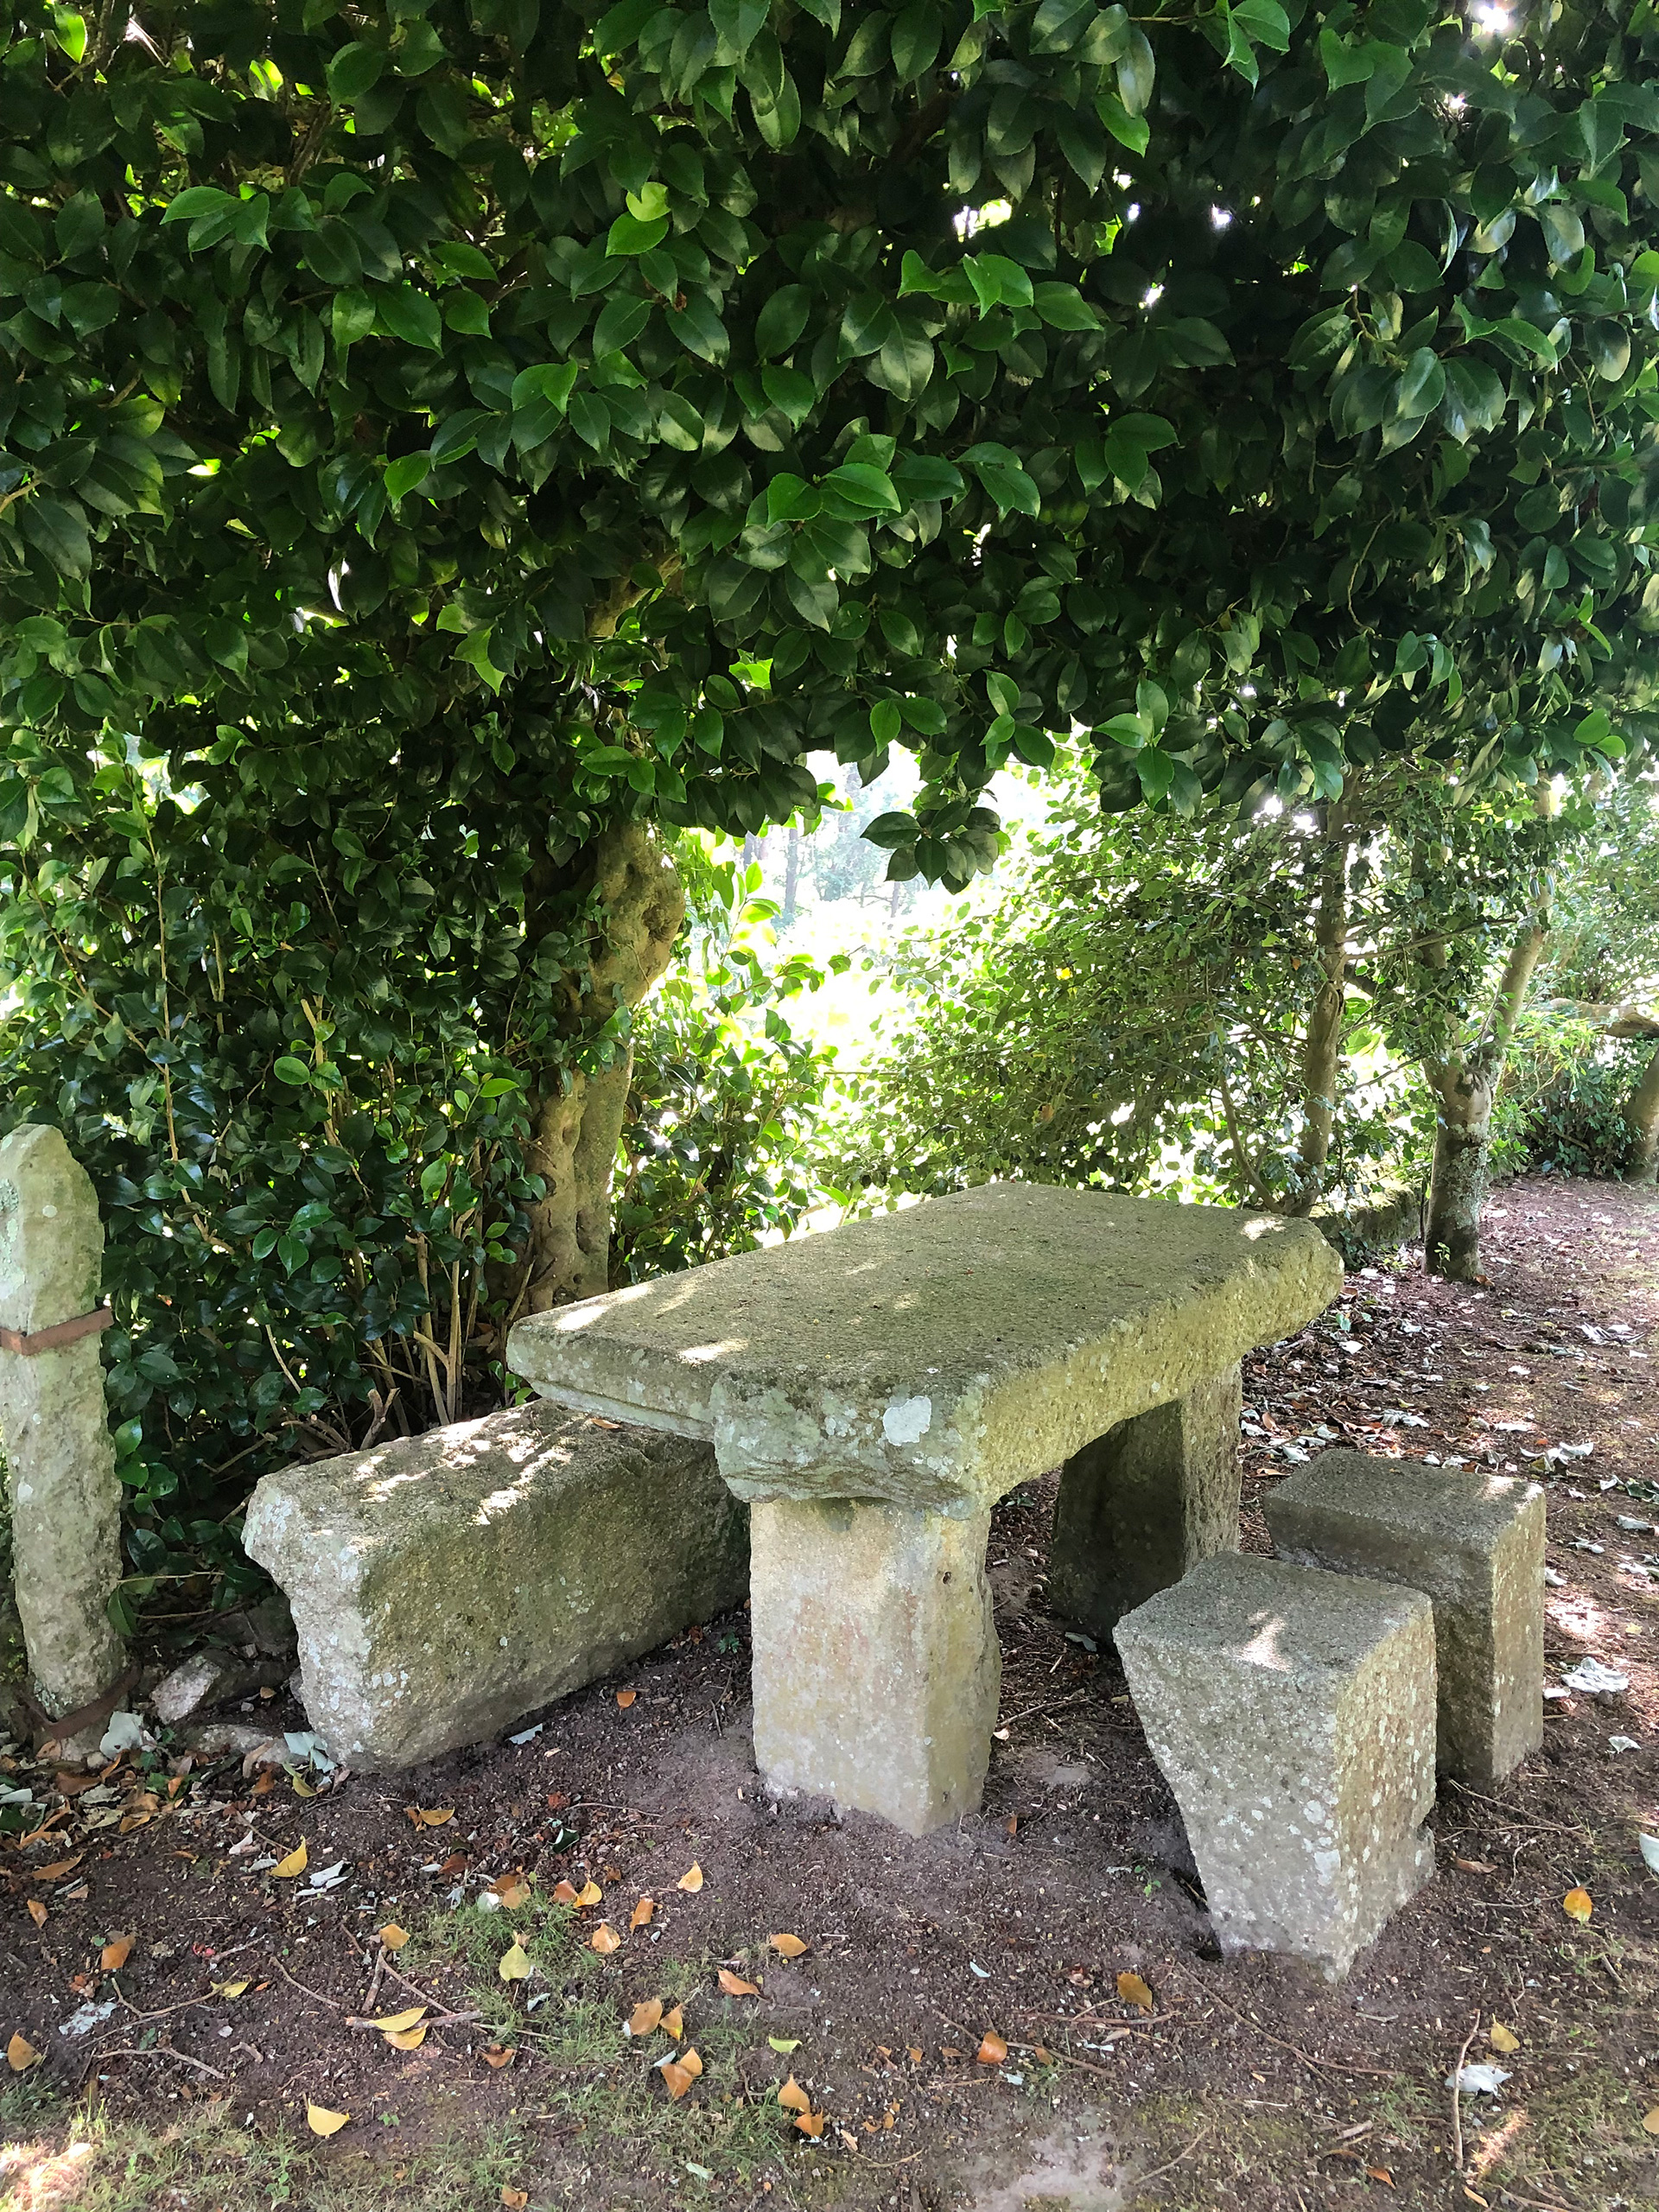 Several stone benches and tables, like this one, are scattered across the property in strategic places, where guests can appreciate a quiet moment | Presenting the Past in Portugal | STIRworld